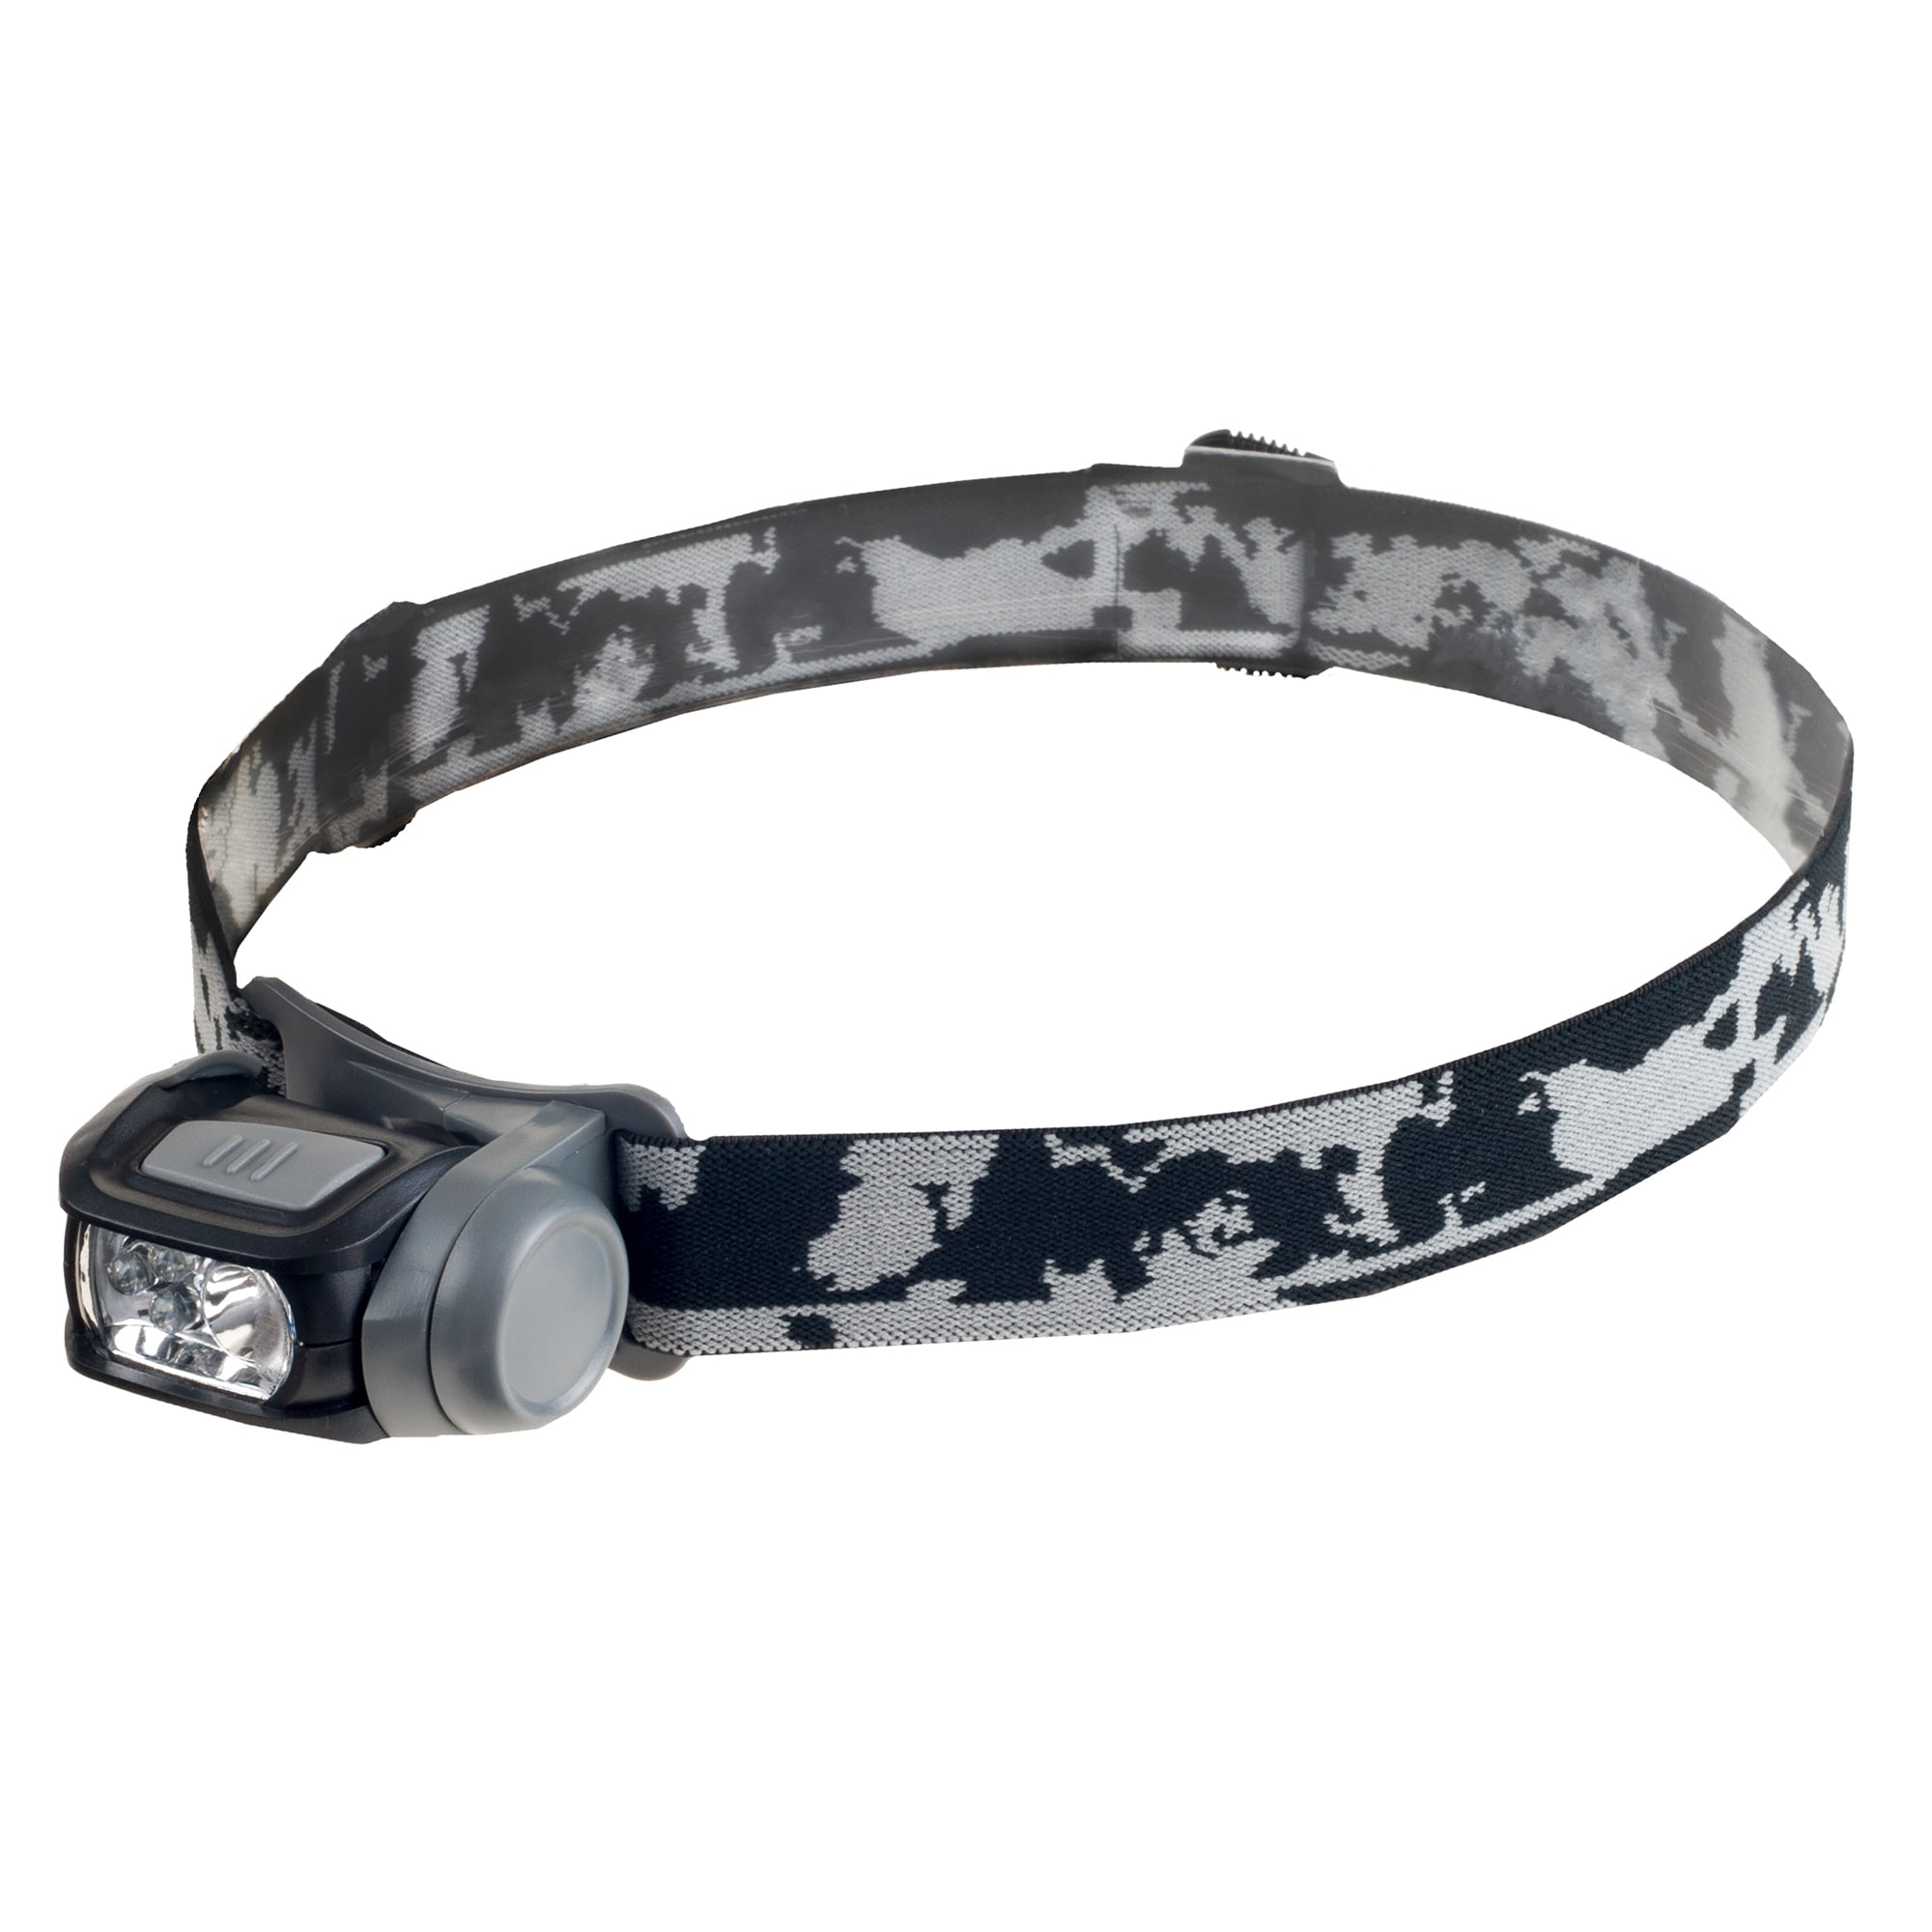 Wakeman Lightweight LED Headlamp with 3 Modes and 100 Lumen CREE Light Bulbs By  Outdoors